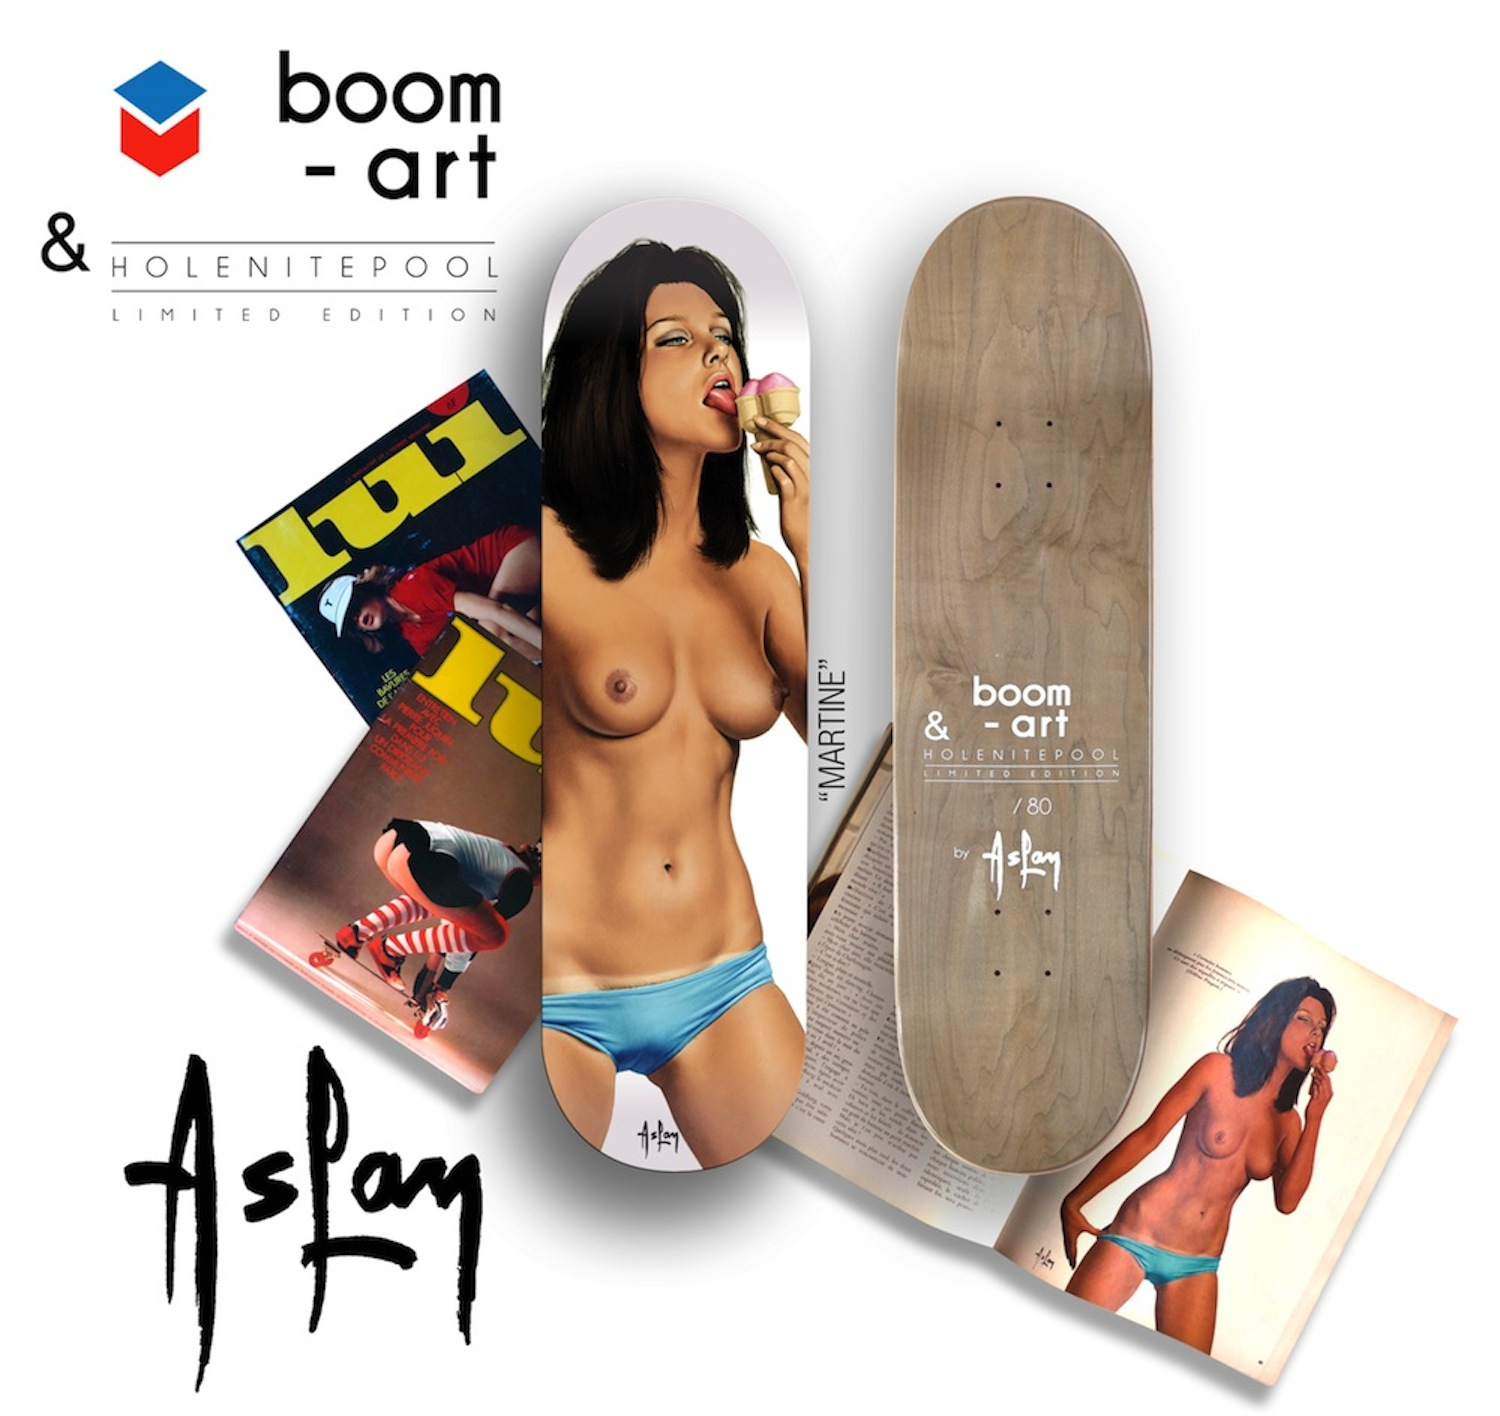 Aslan's Pin-Up Skateboards: boomart_1_20120309_1999097134.jpg